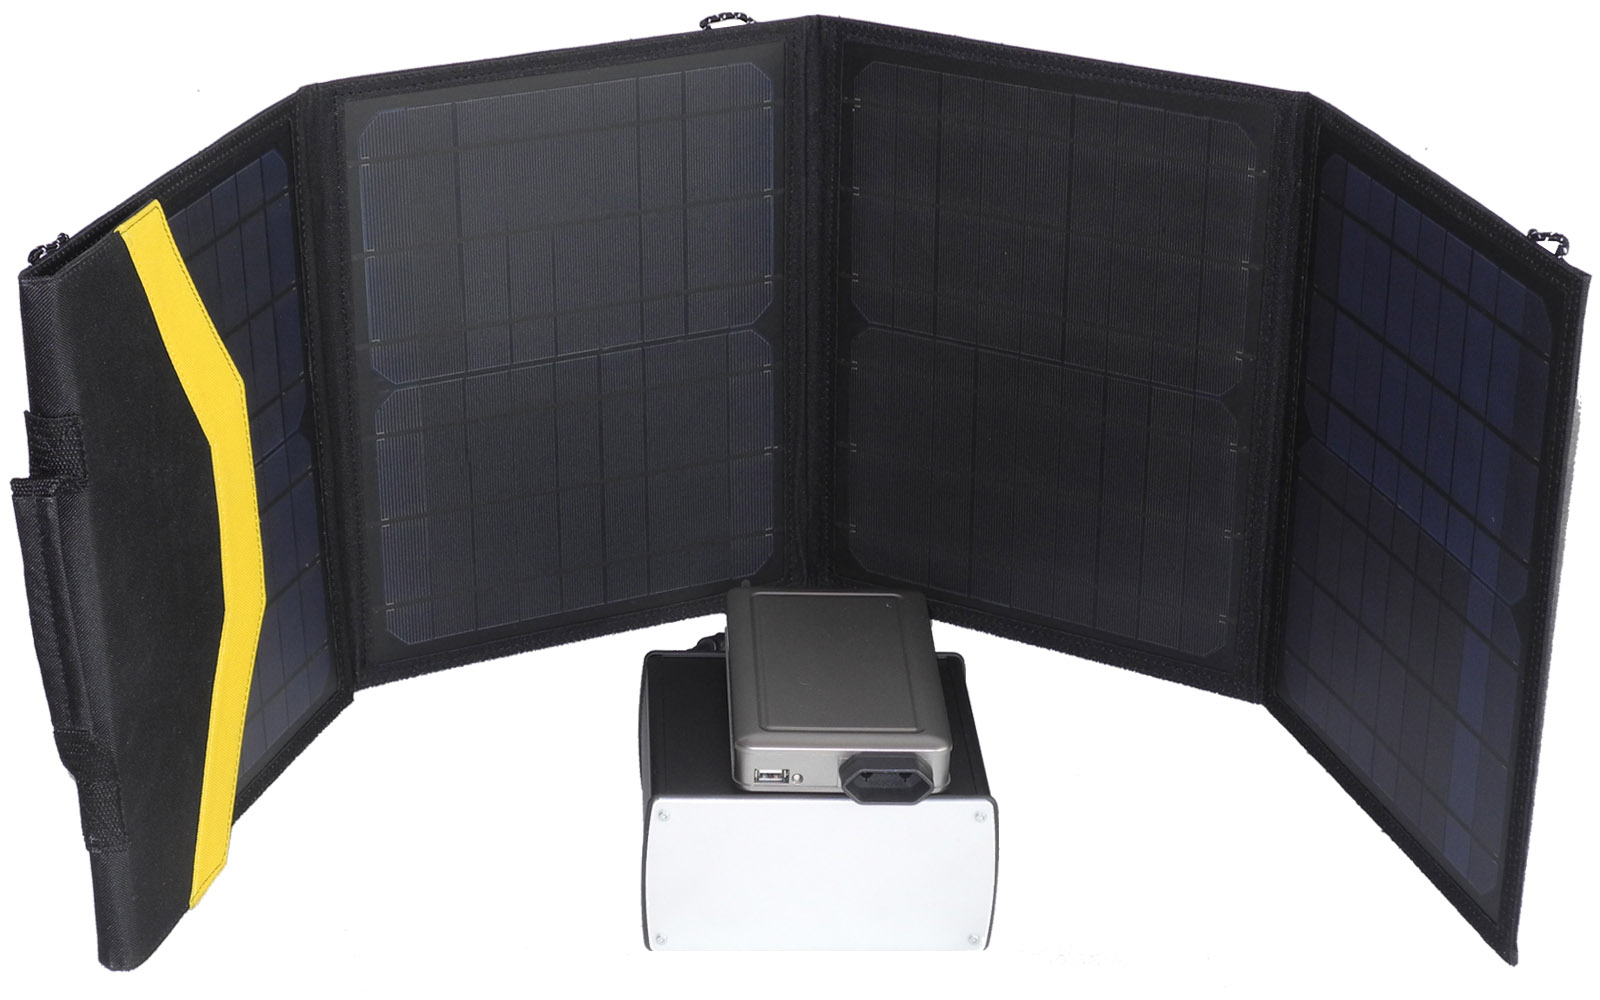 miete von solar powerbank f r camping urlaub reise smartpanel. Black Bedroom Furniture Sets. Home Design Ideas